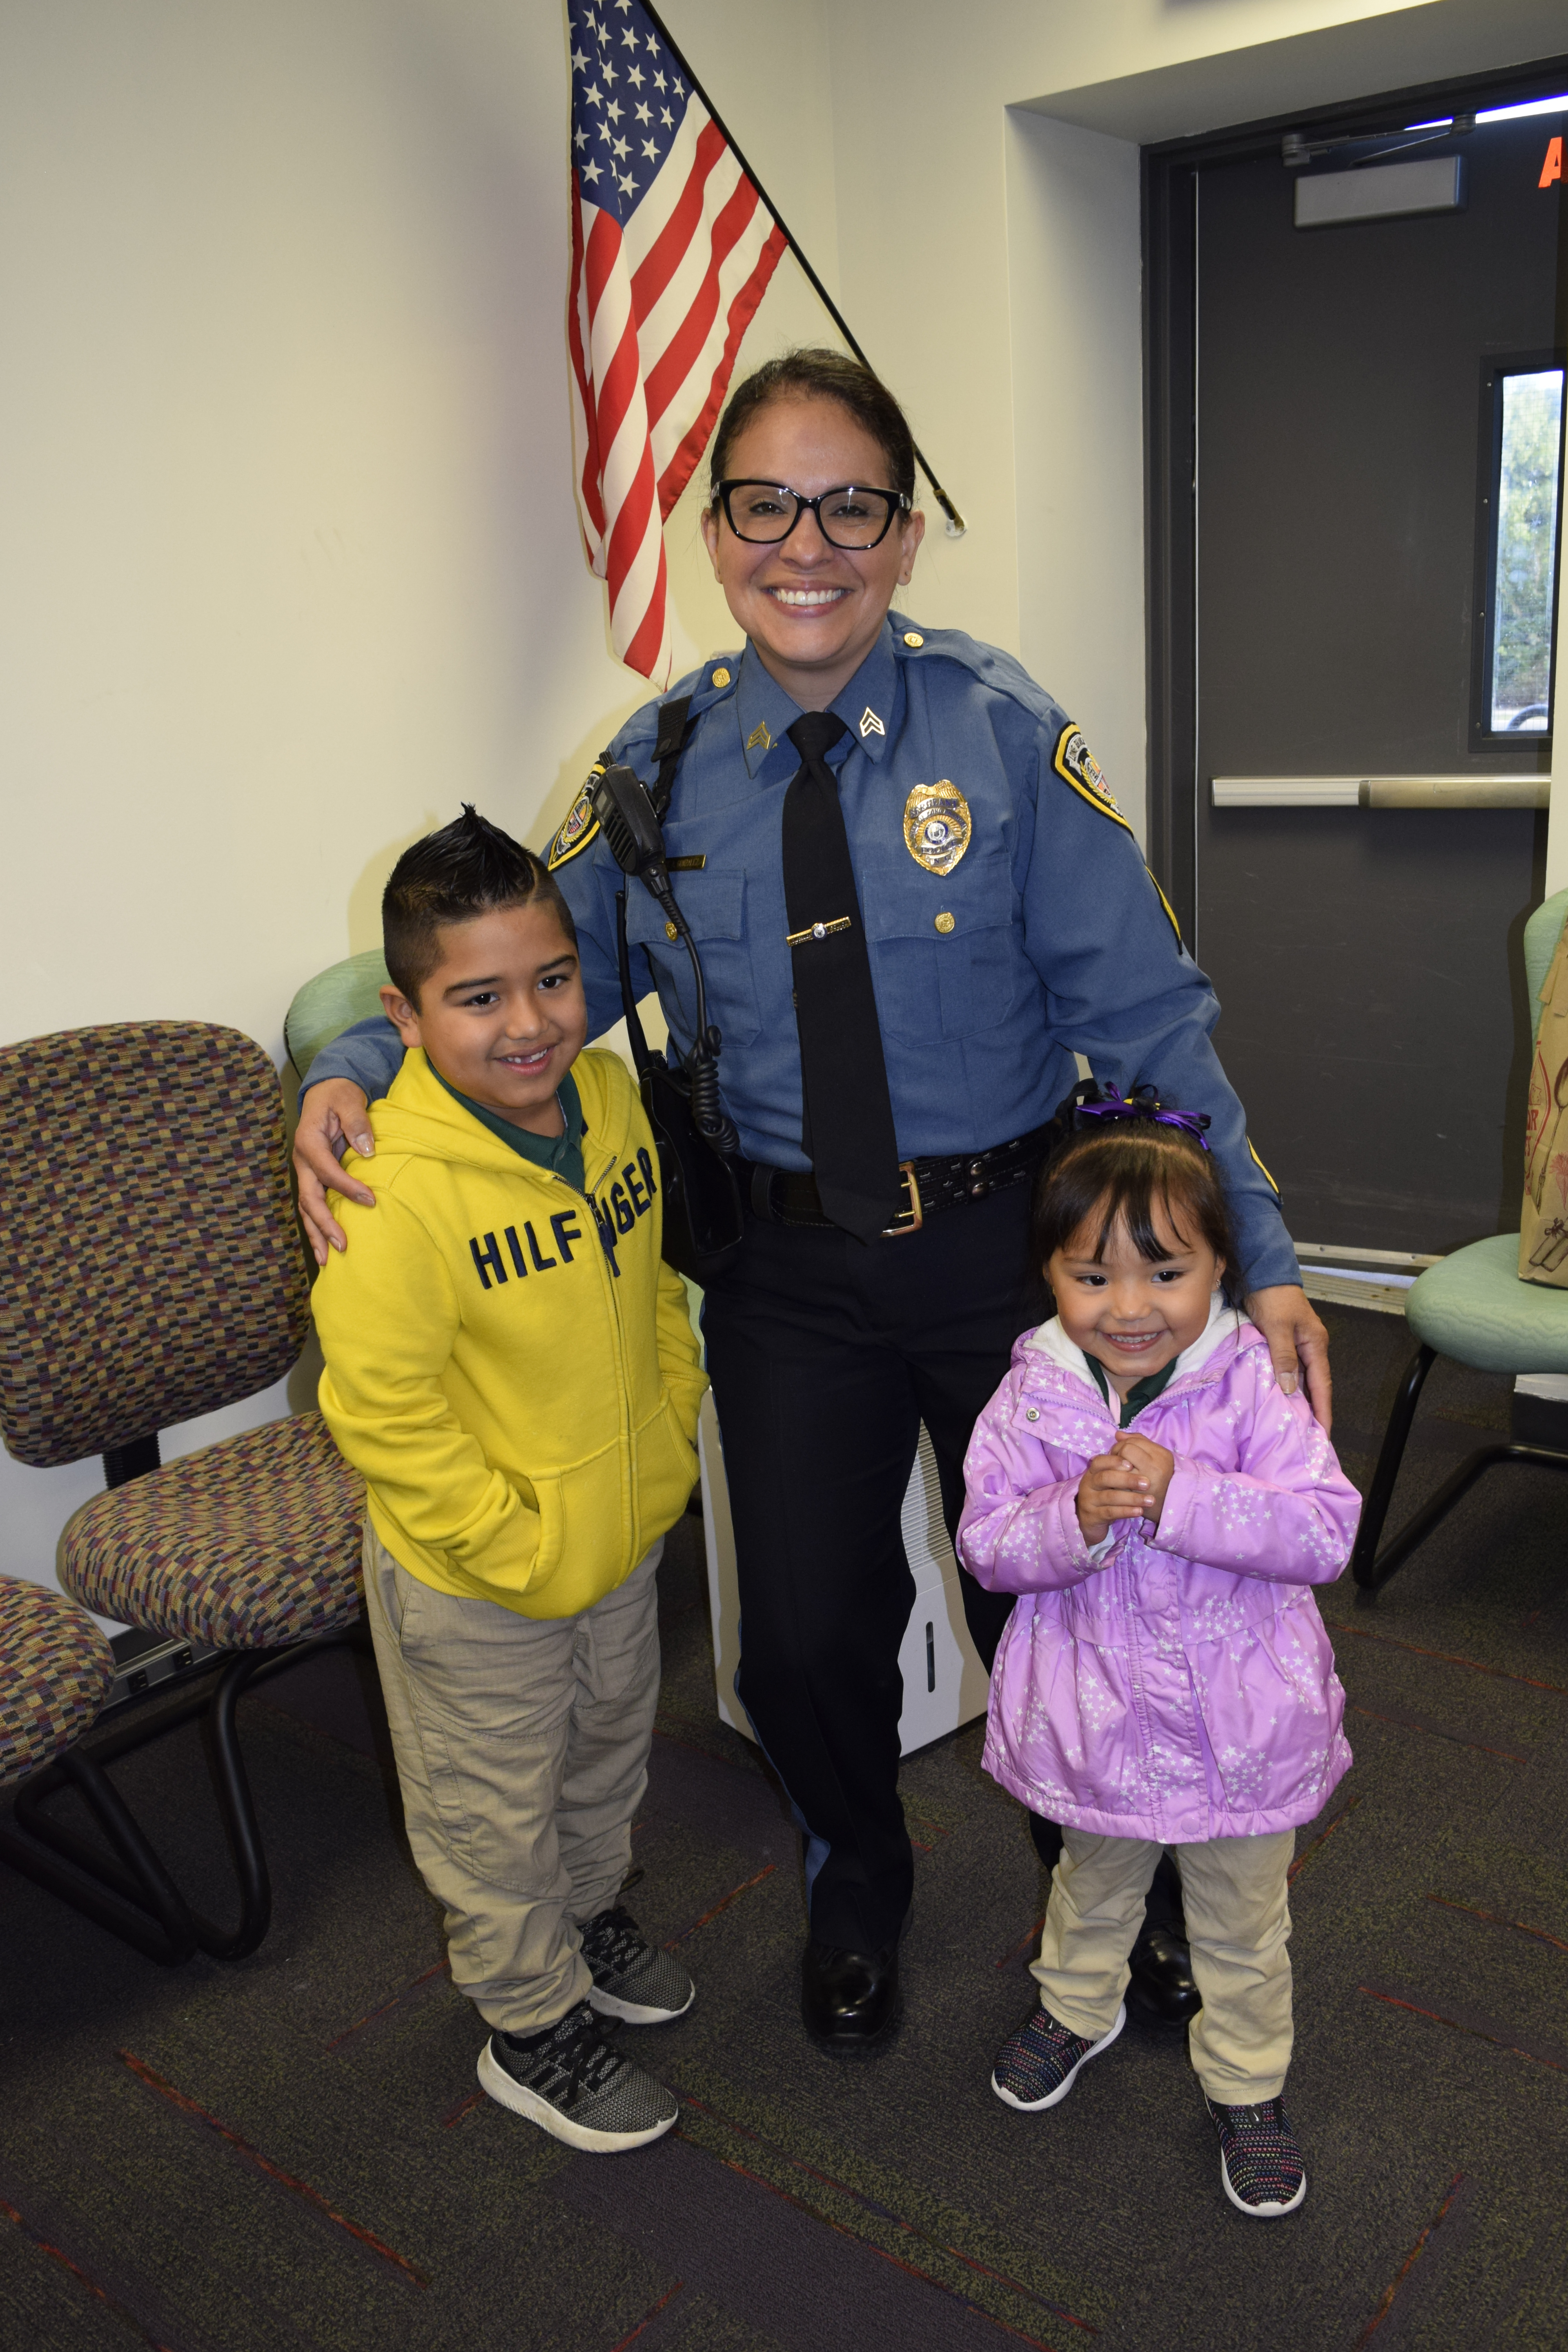 LBPD officer and young guests